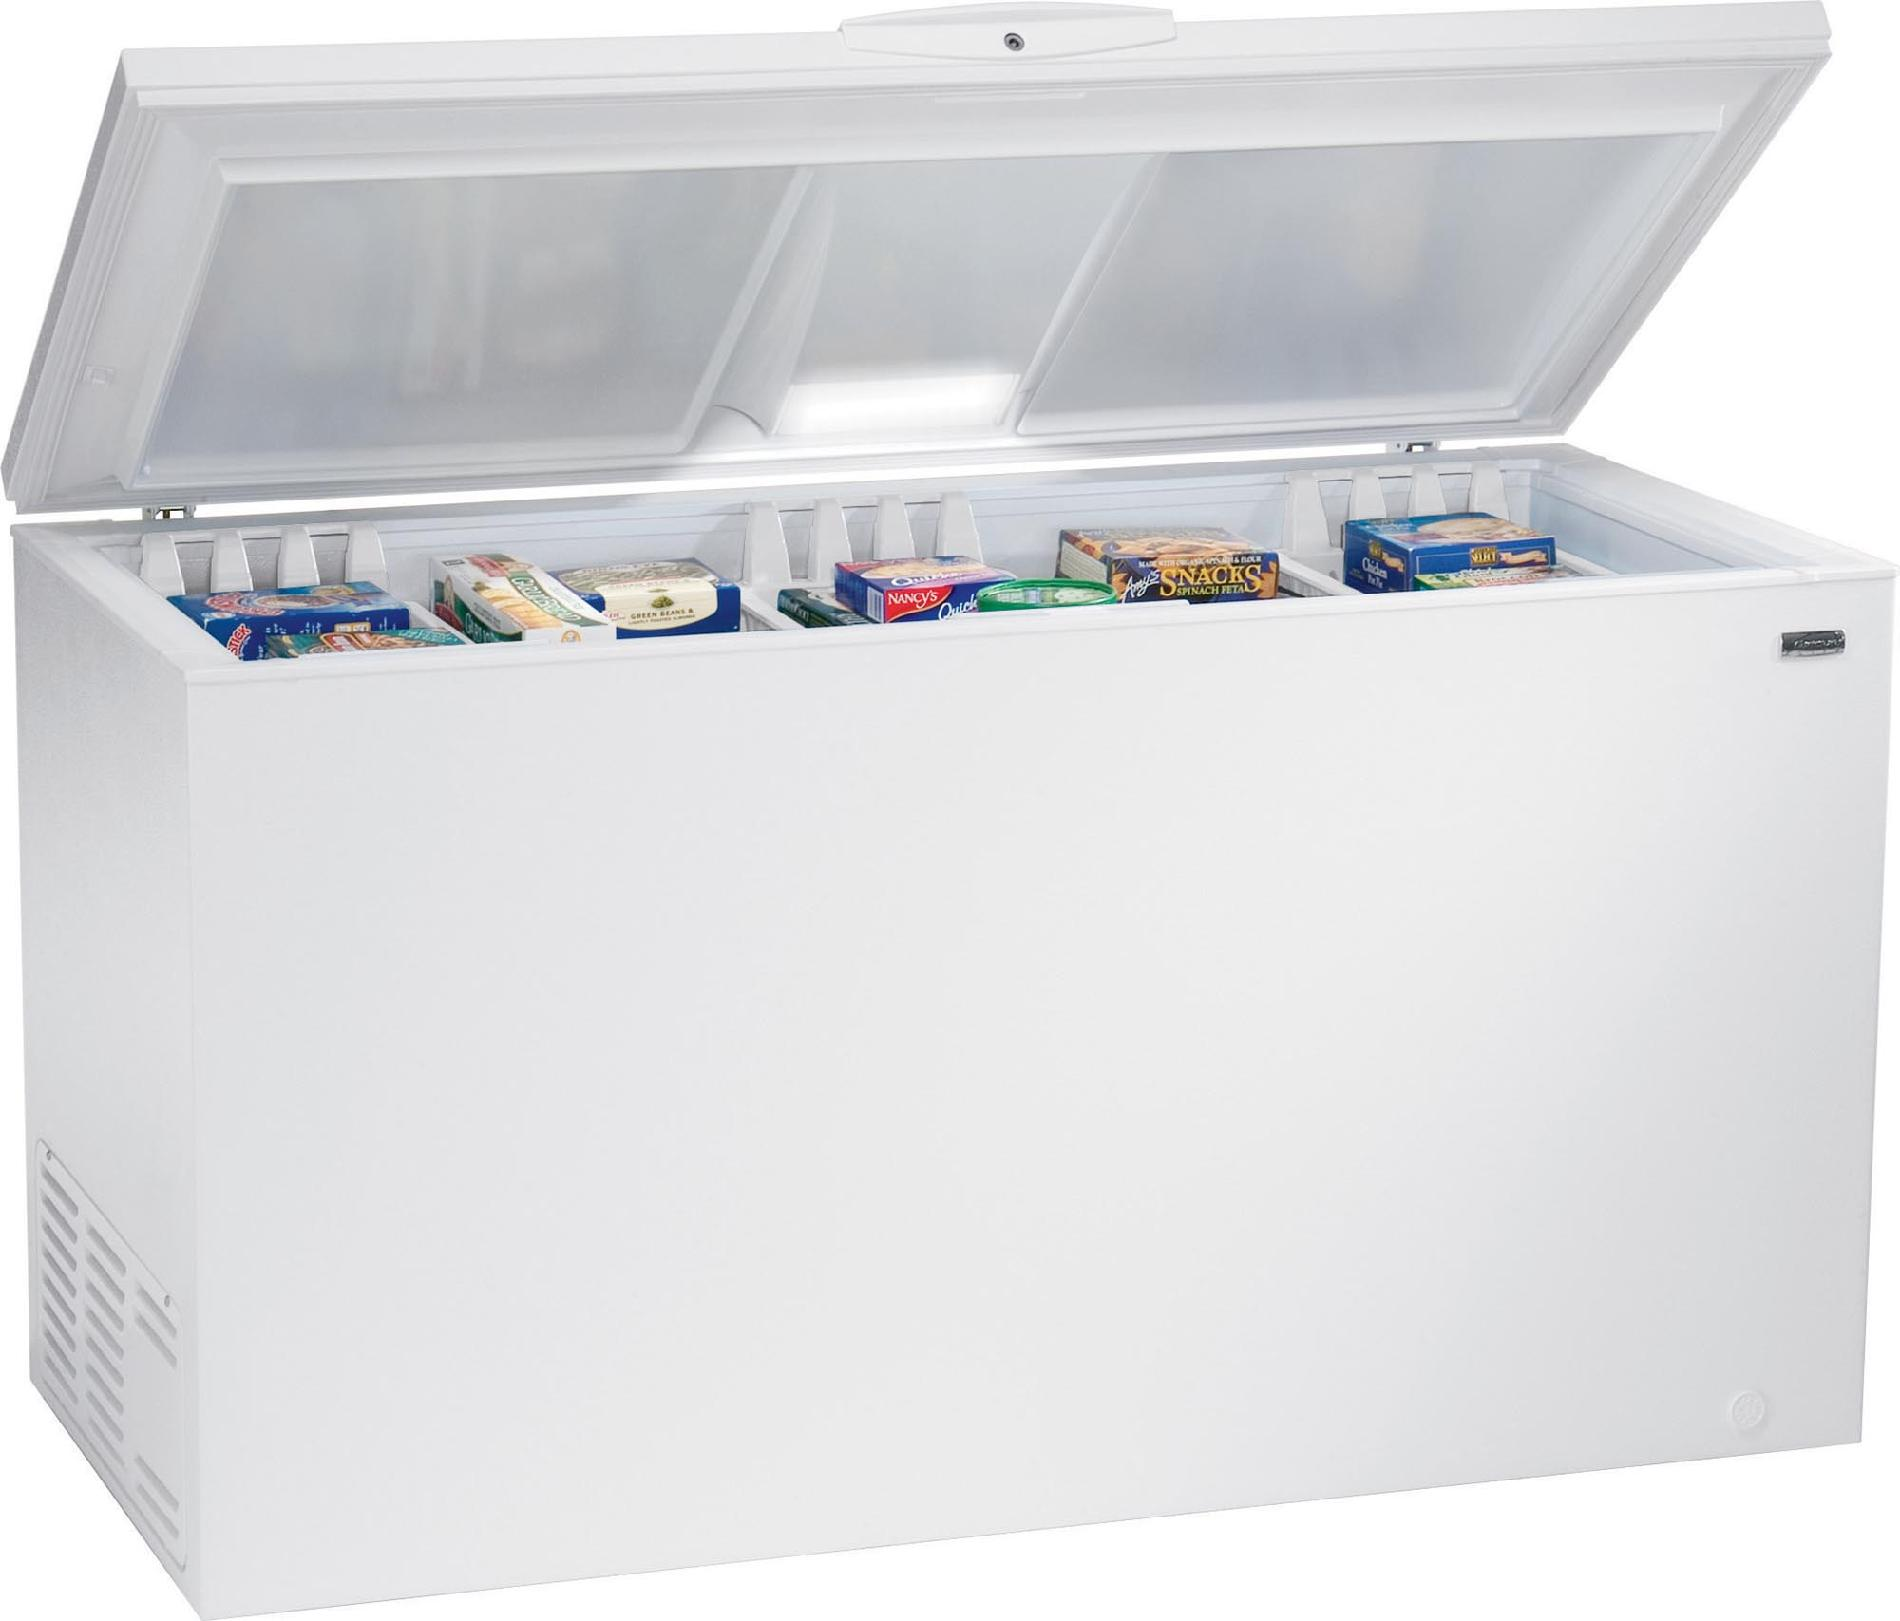 Freezer 24 CFT KEG WITH LOCK KS-255C